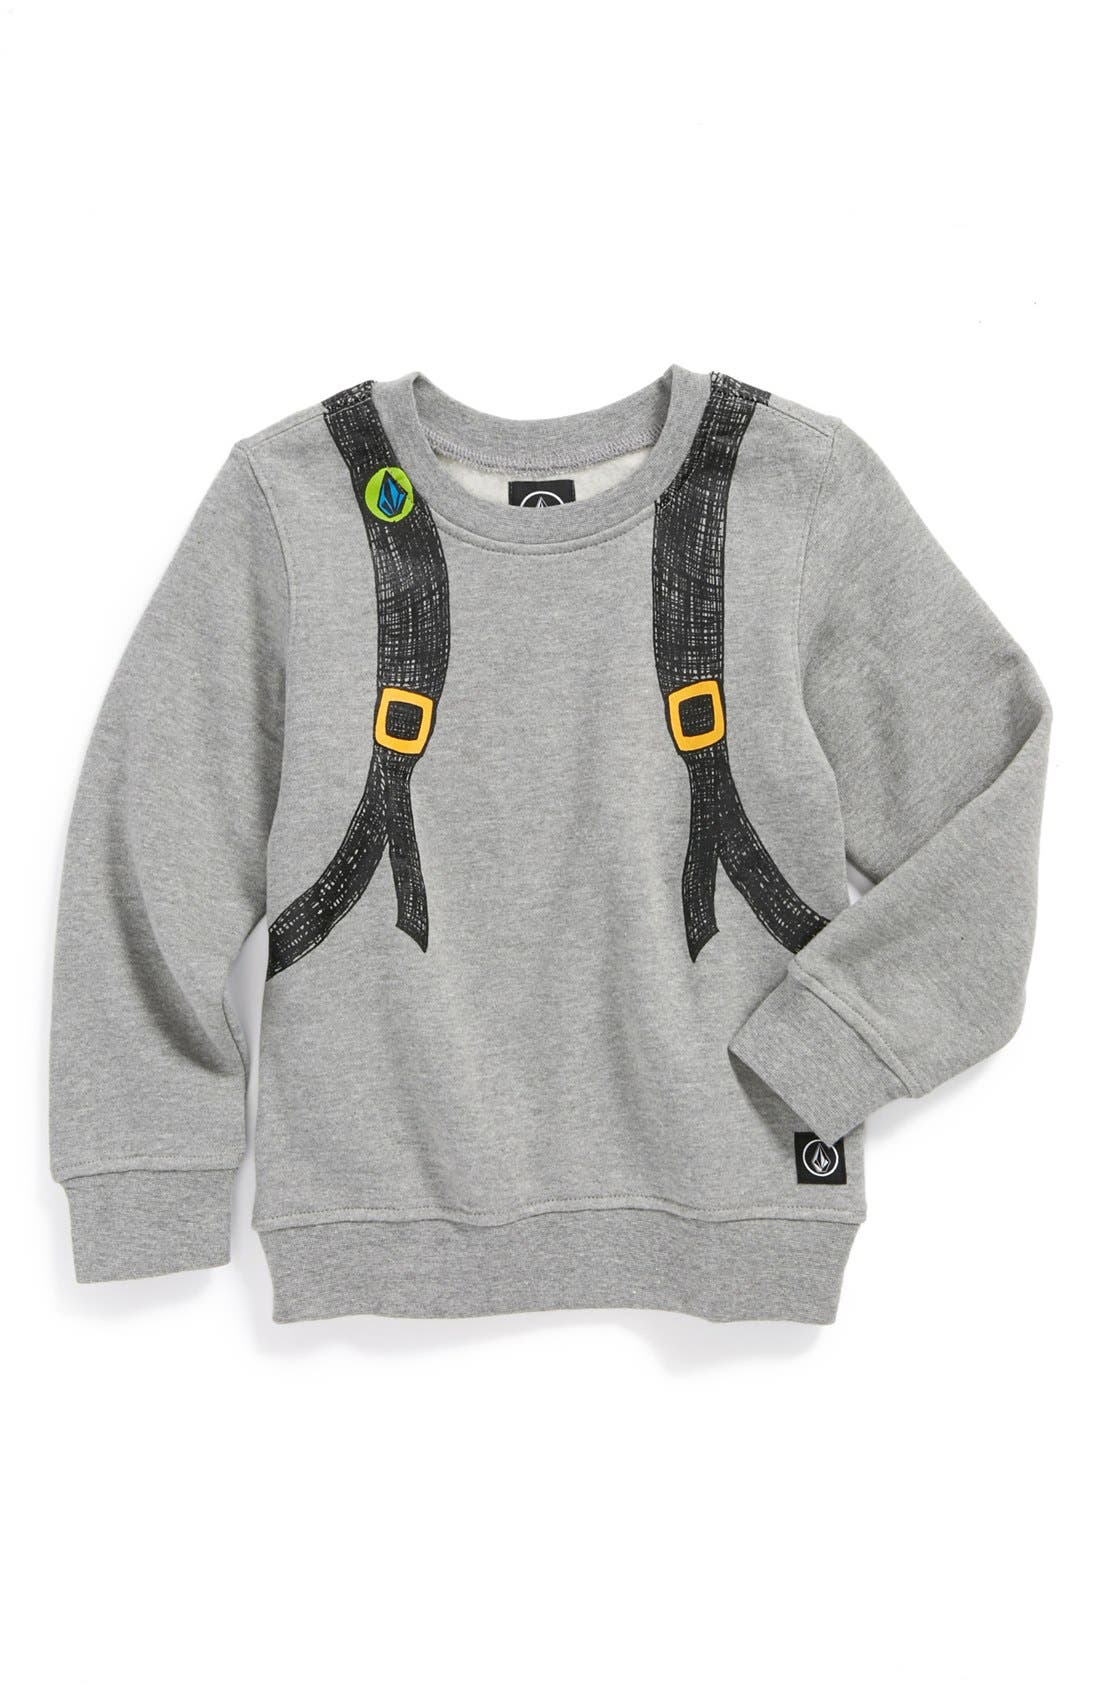 Alternate Image 1 Selected - Volcom 'Reconeryo' Sweatshirt (Little Boys)